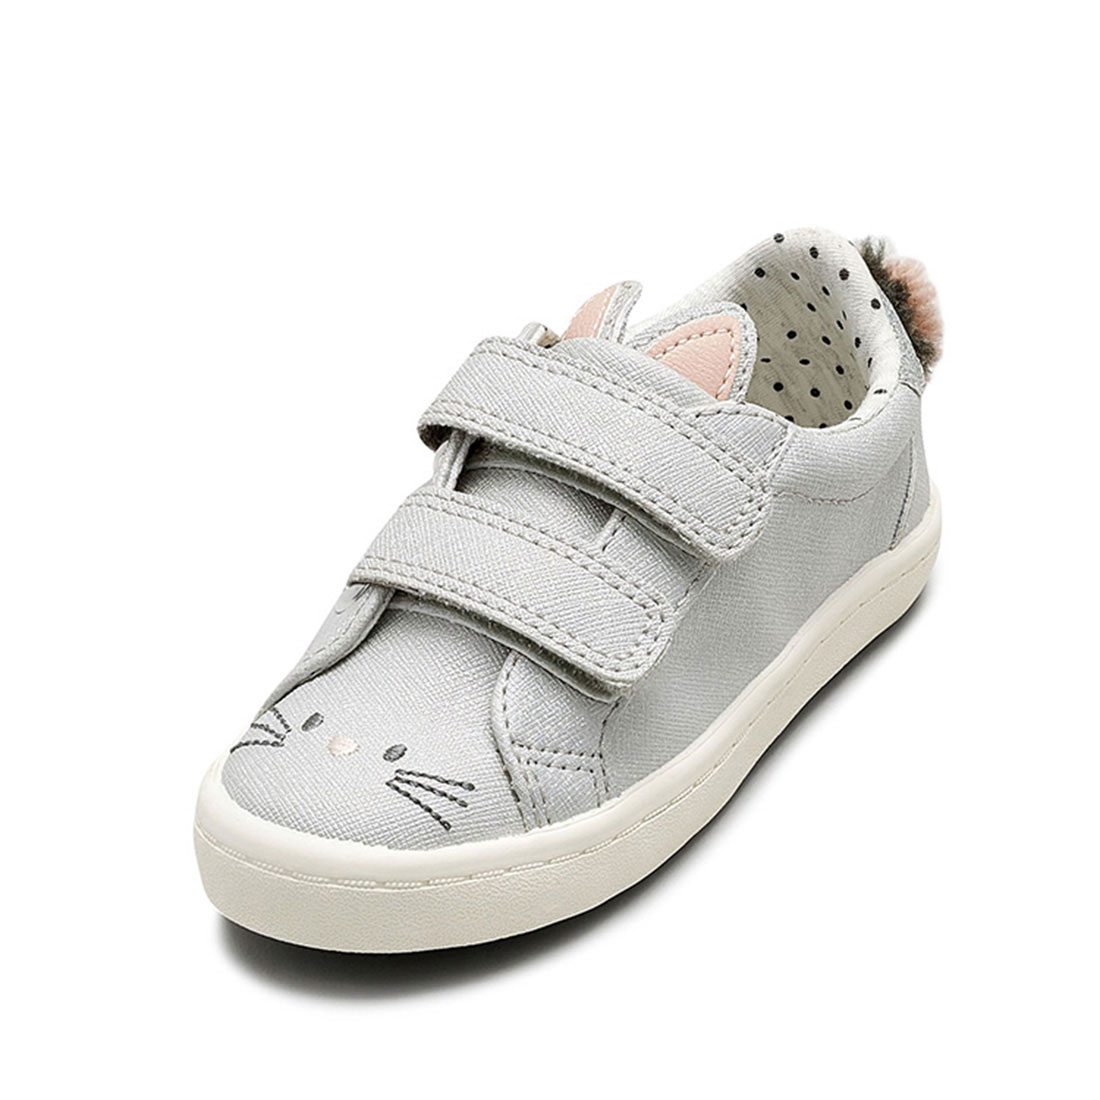 Saffiano upper gray flat round toe lovely fashion little cat children footwear